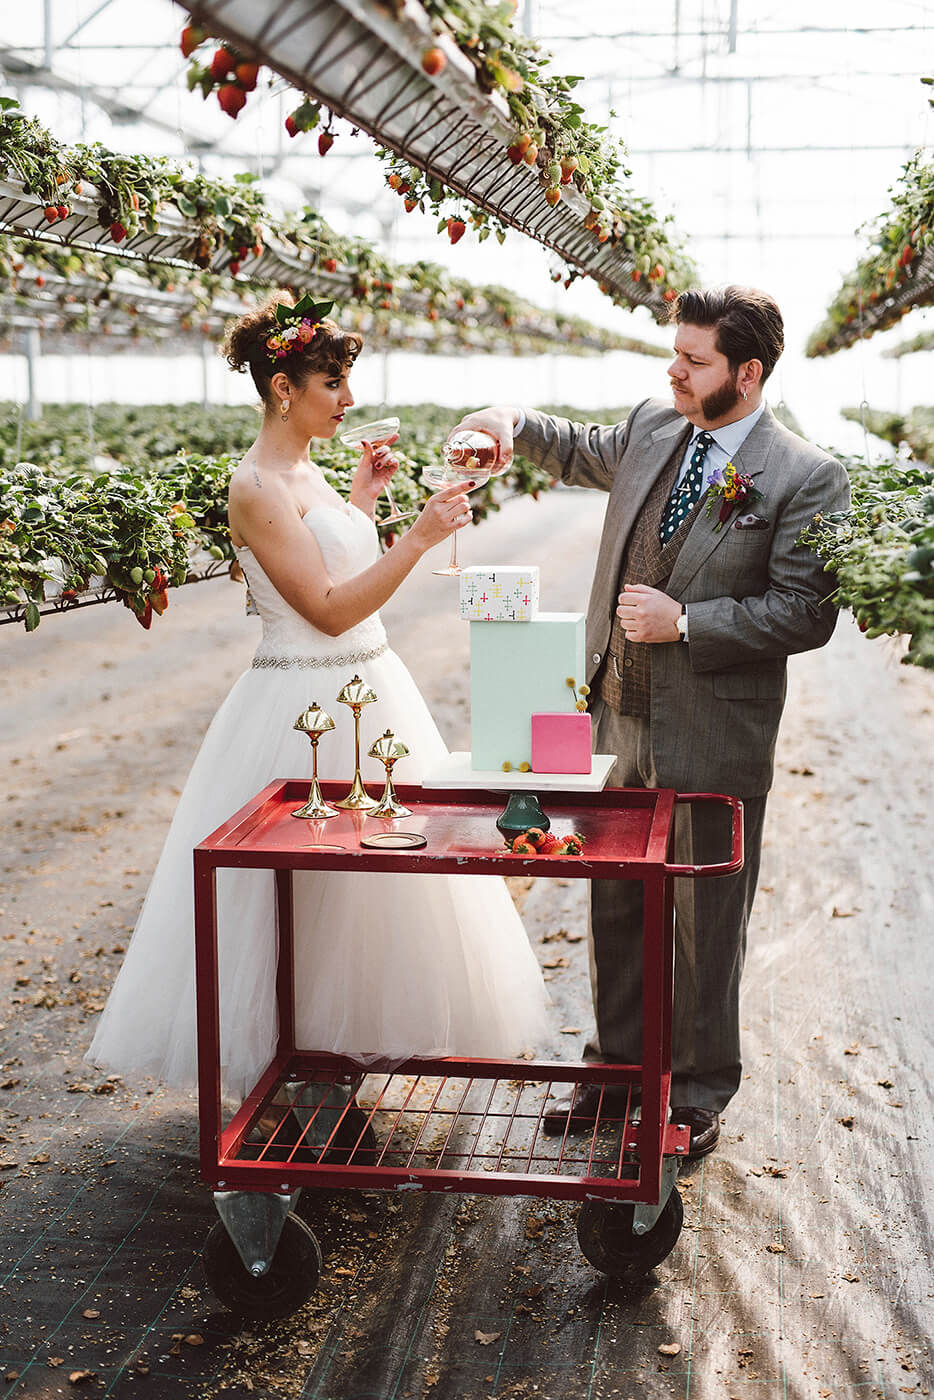 roma-organizacao-eventos-editorial-mid-century-modern-wedding-in-a-strawberry-field-27